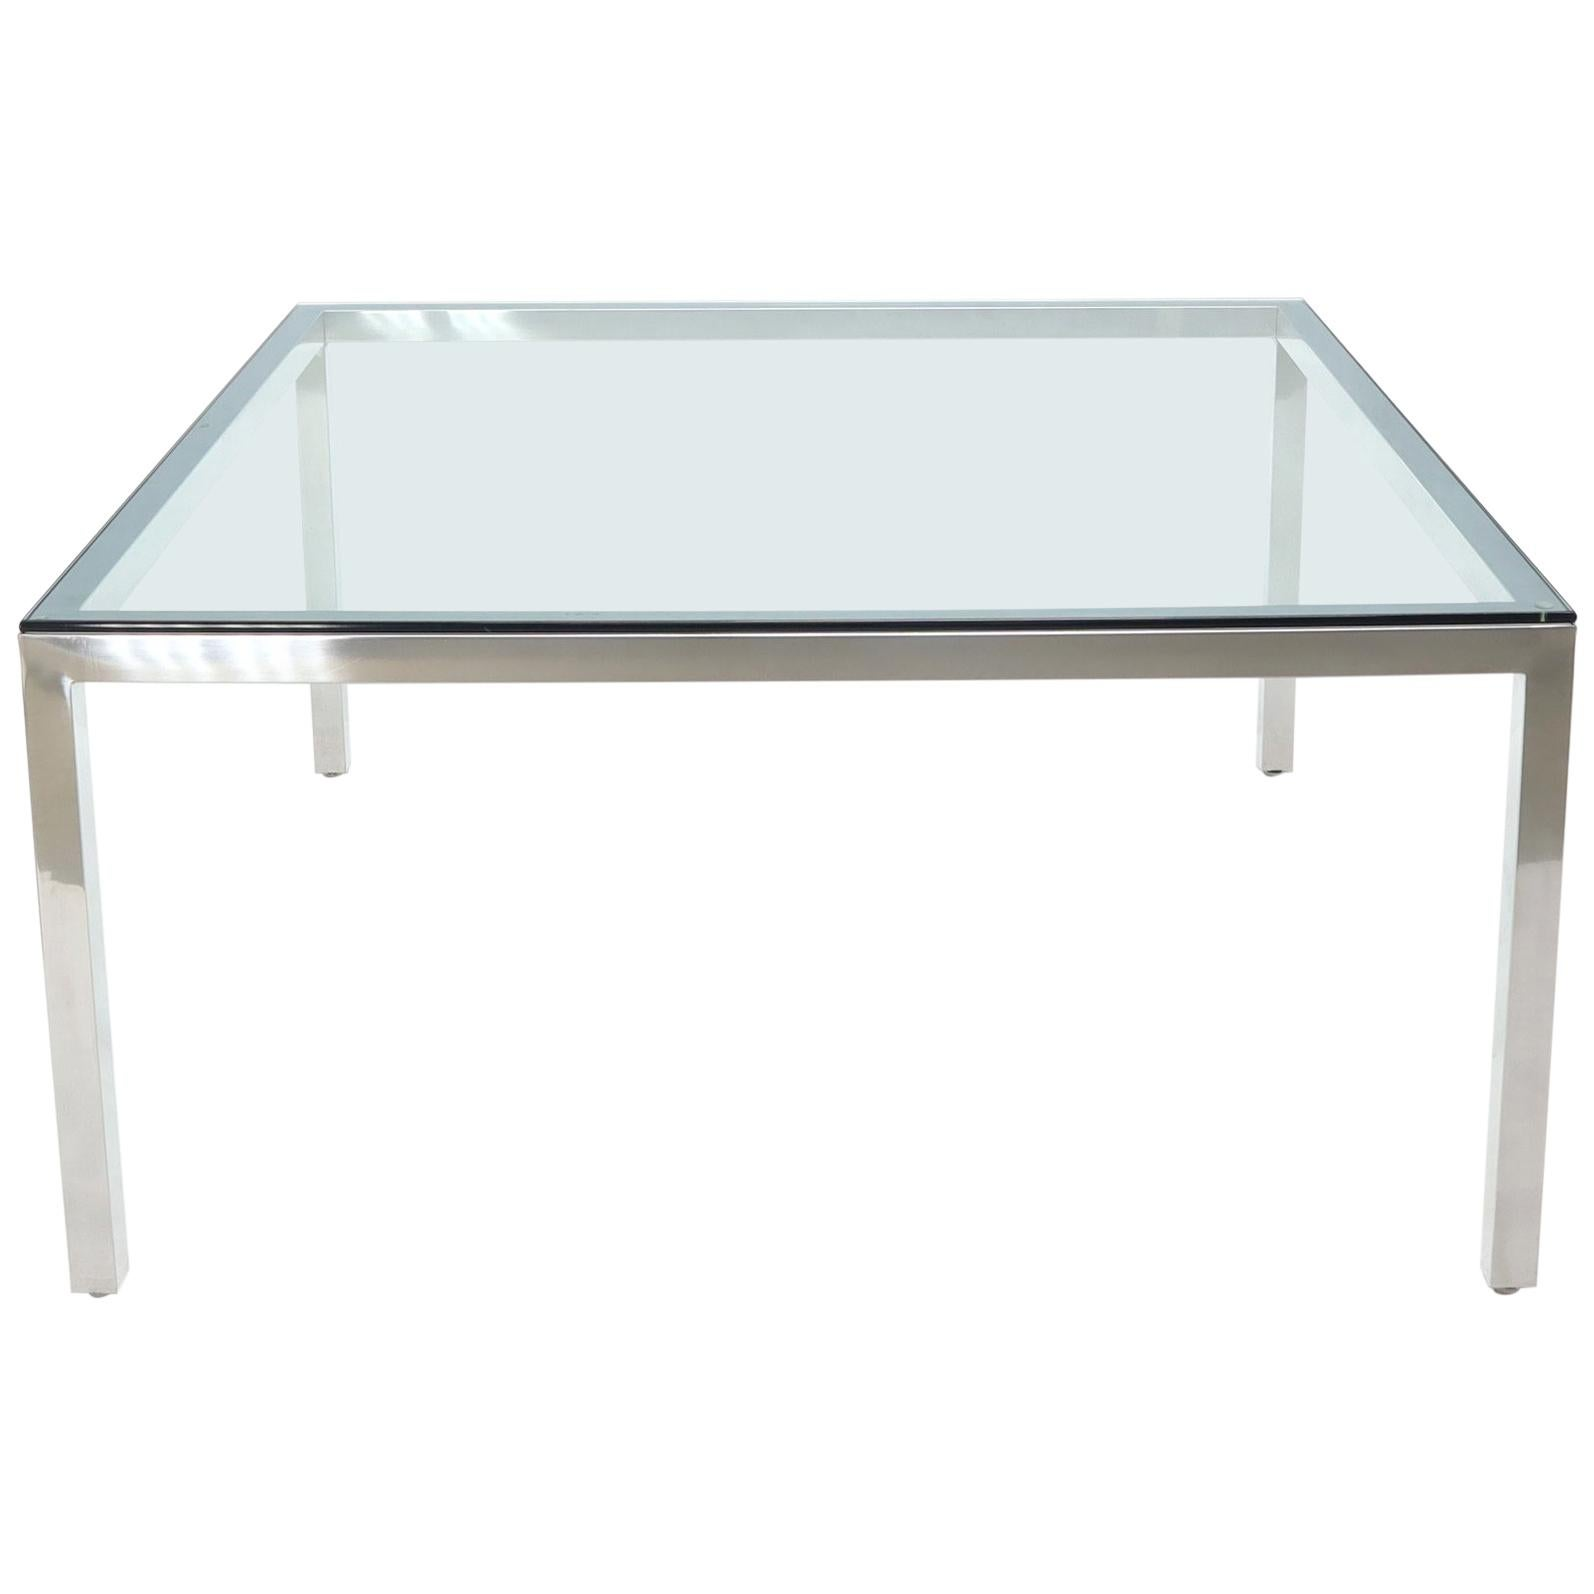 Large Square Glass Top Chrome Frame Dining Conference Table Baughman Attributed